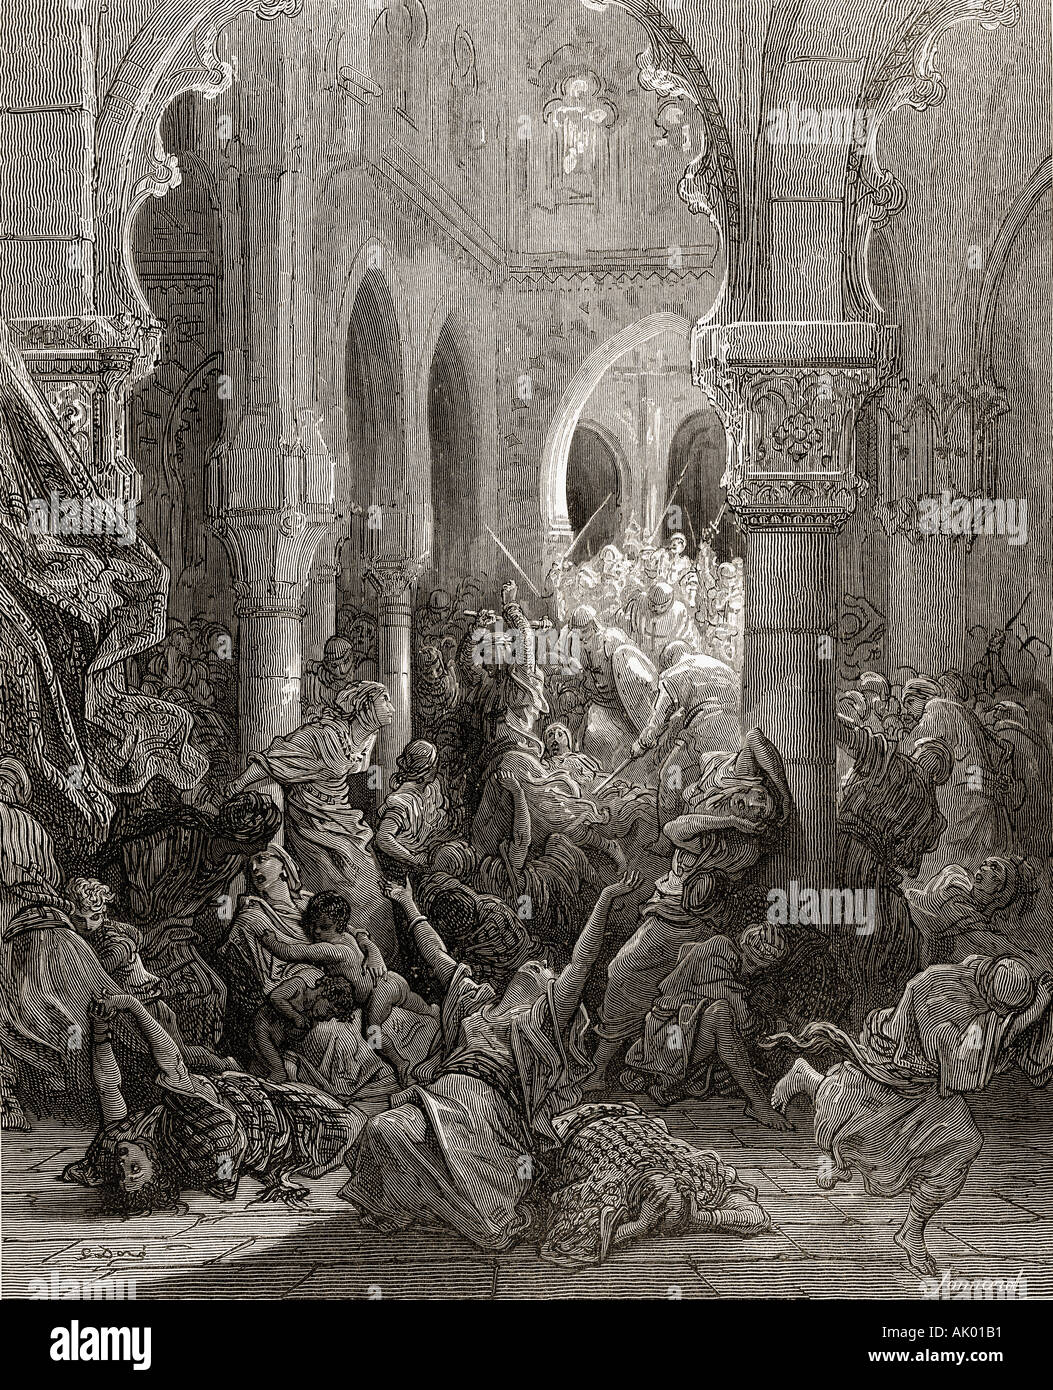 The crusaders massacre the inhabitants of Caesarea during the first crusade, 1096 -1146. - Stock Image